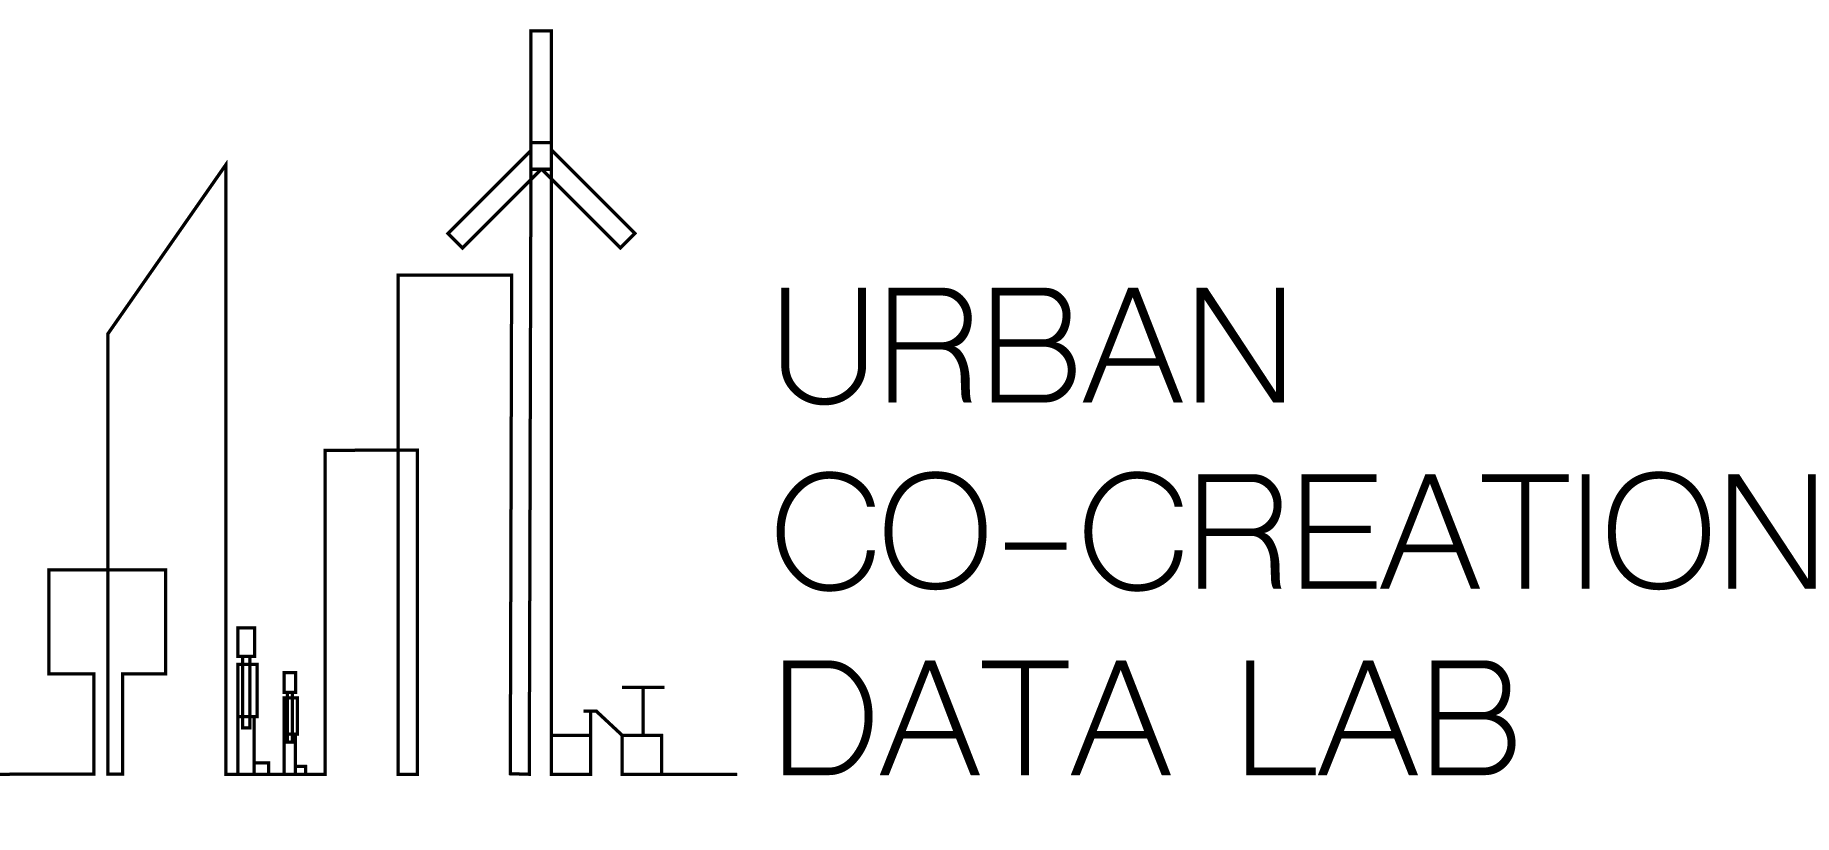 Urban Co-Creation Data Lab